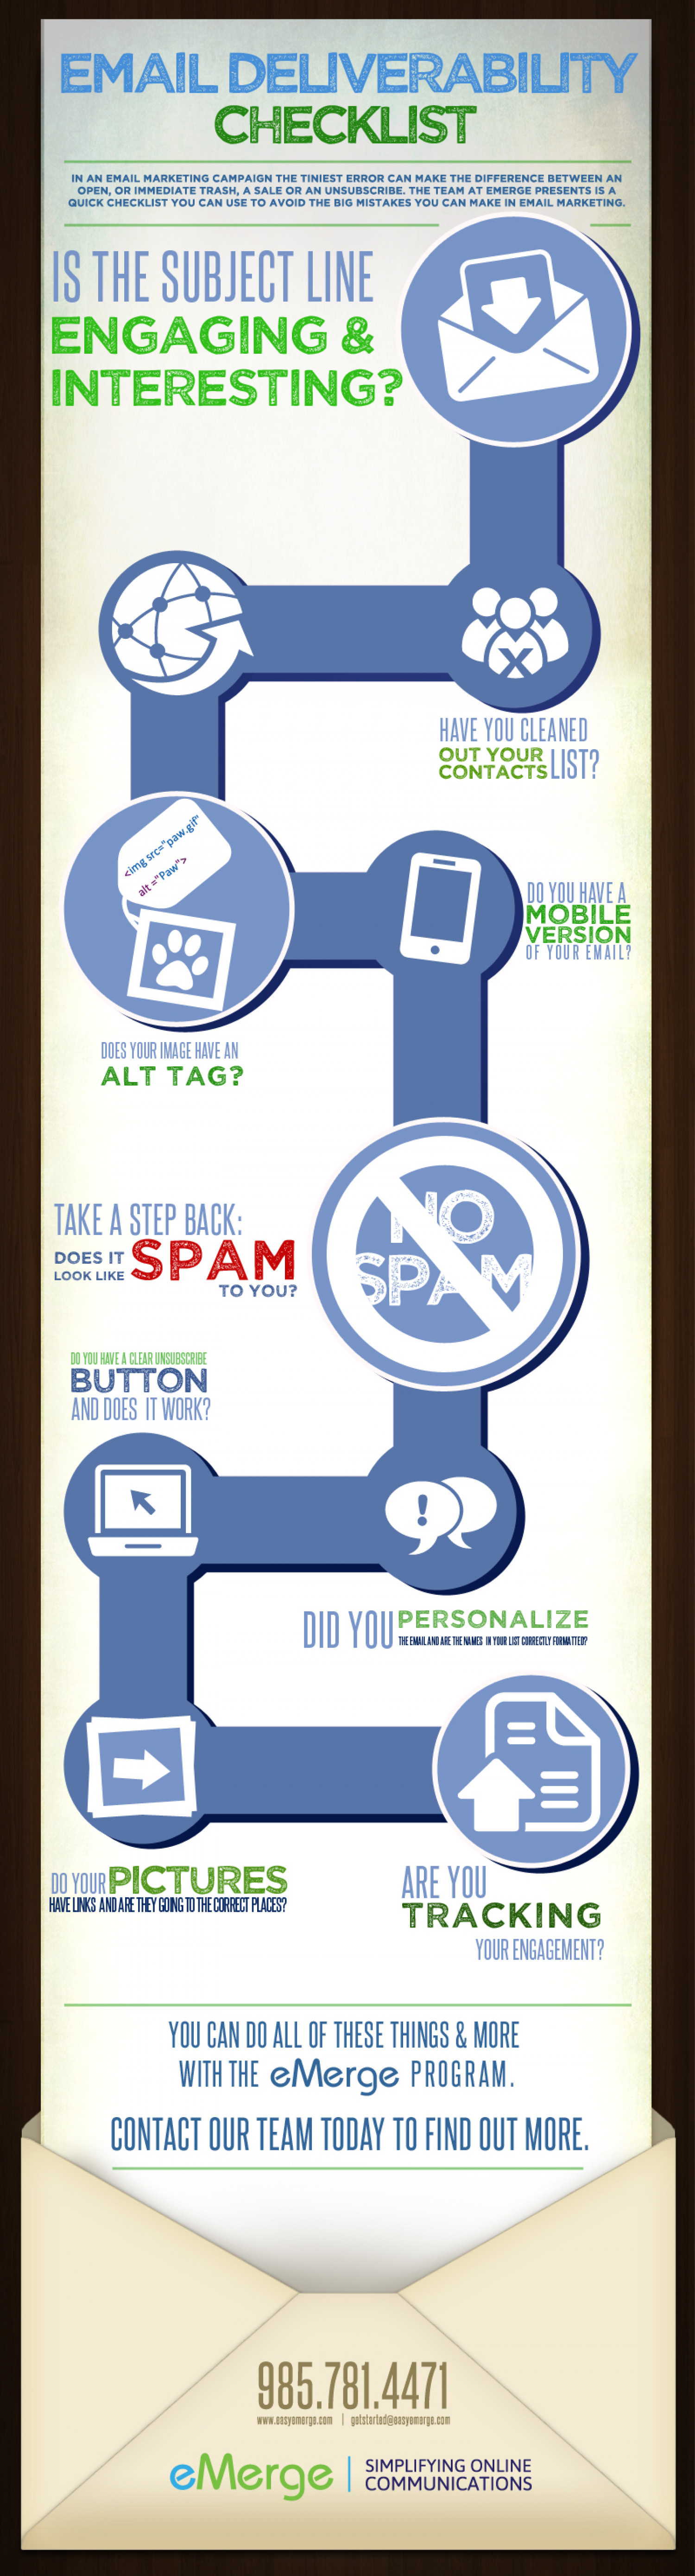 Email Deliverability Checklist Infographic